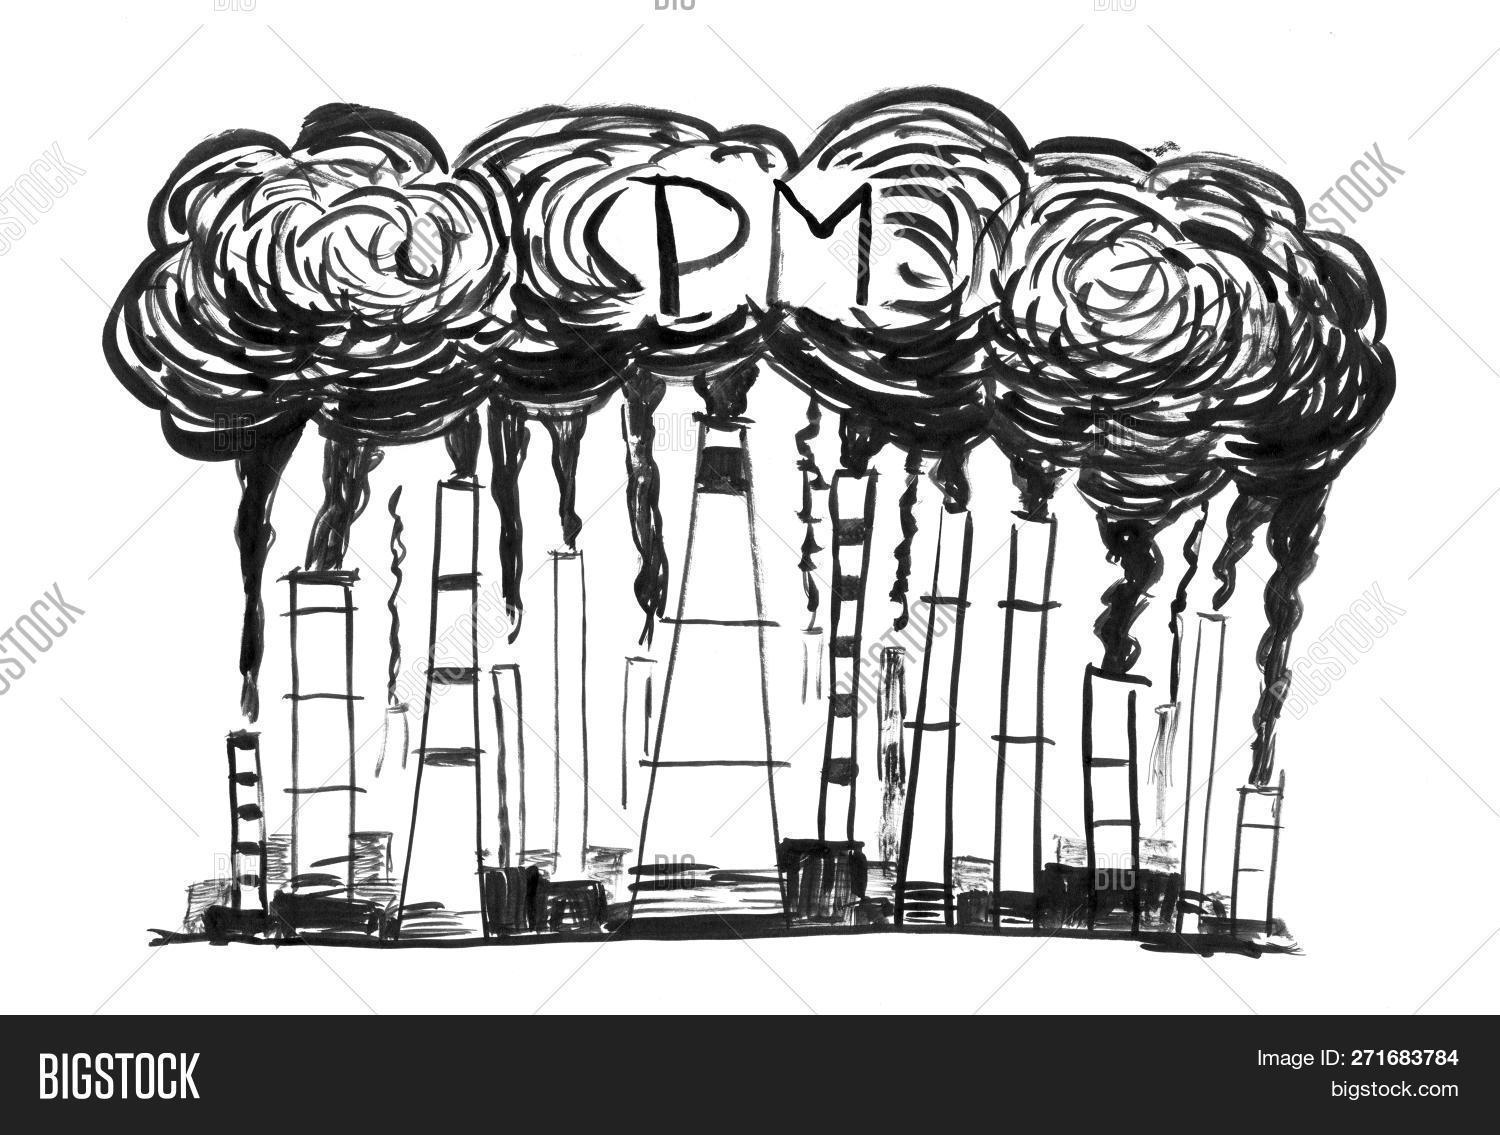 Hand drawing of smoke coming from industry or factory smokestacks or chimneys into air environmental concept of particulate matter or pm air pollution